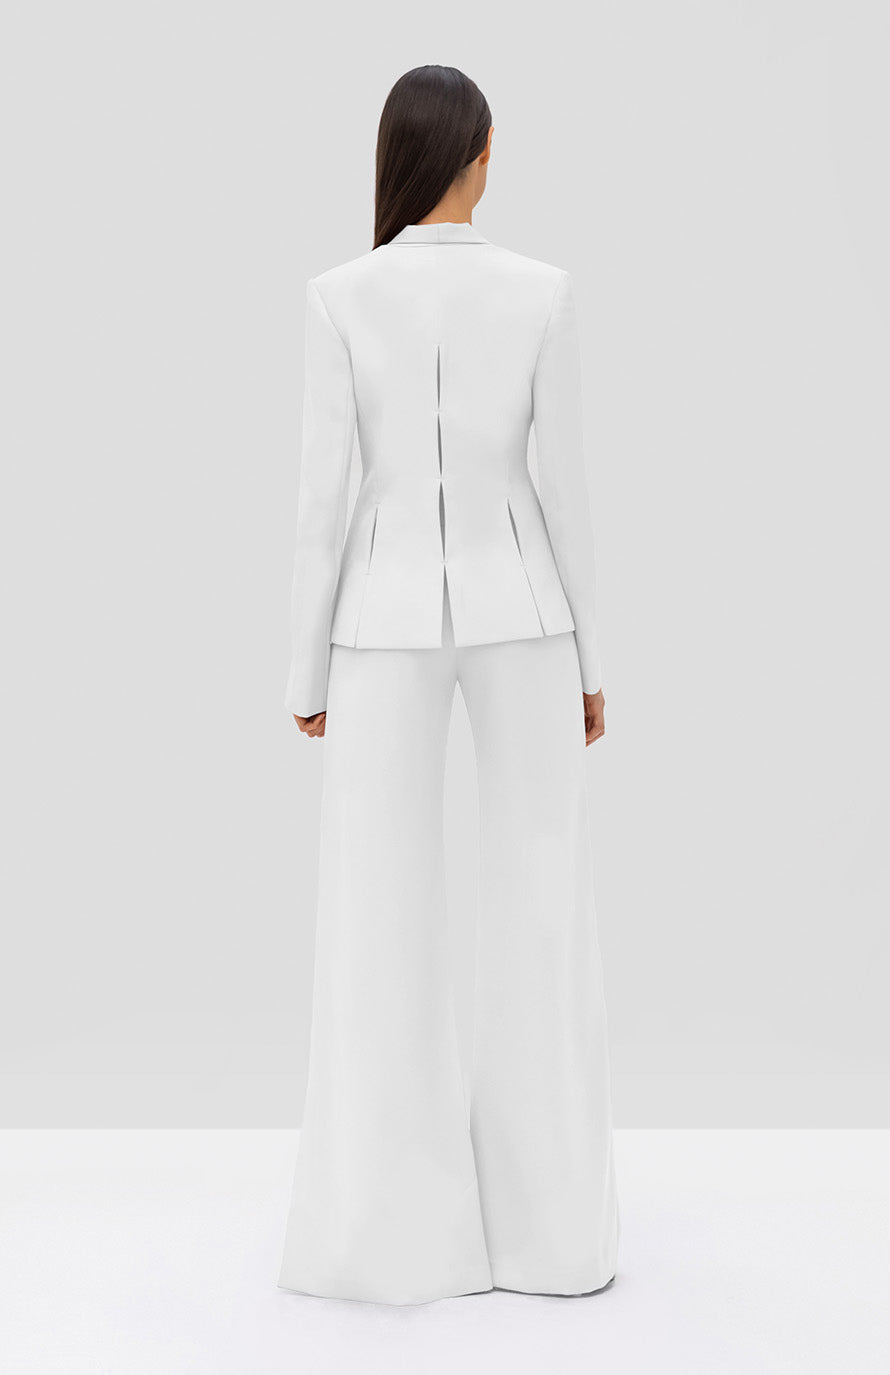 Alexis Vaska Blazer and Roque Pant White - Rear View